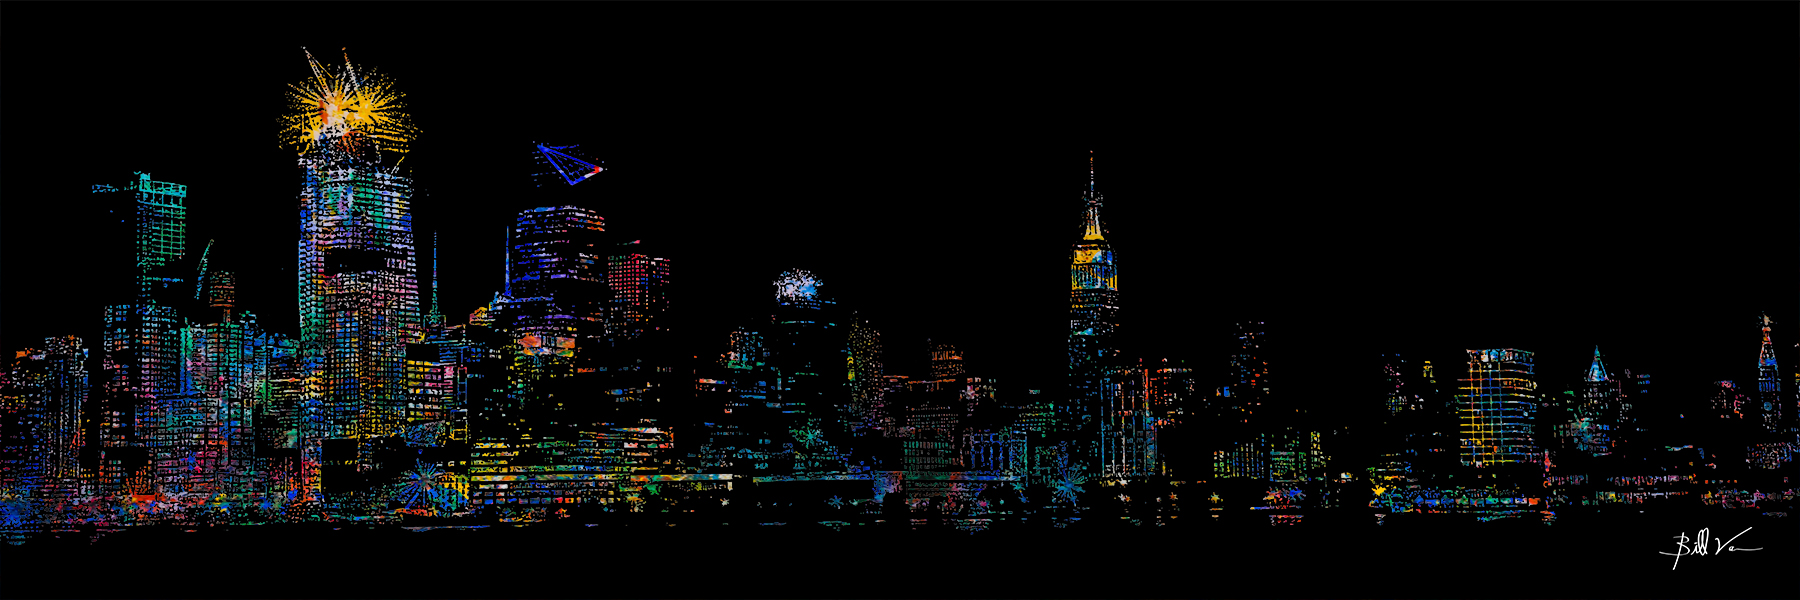 New York Skyline 16 x 48